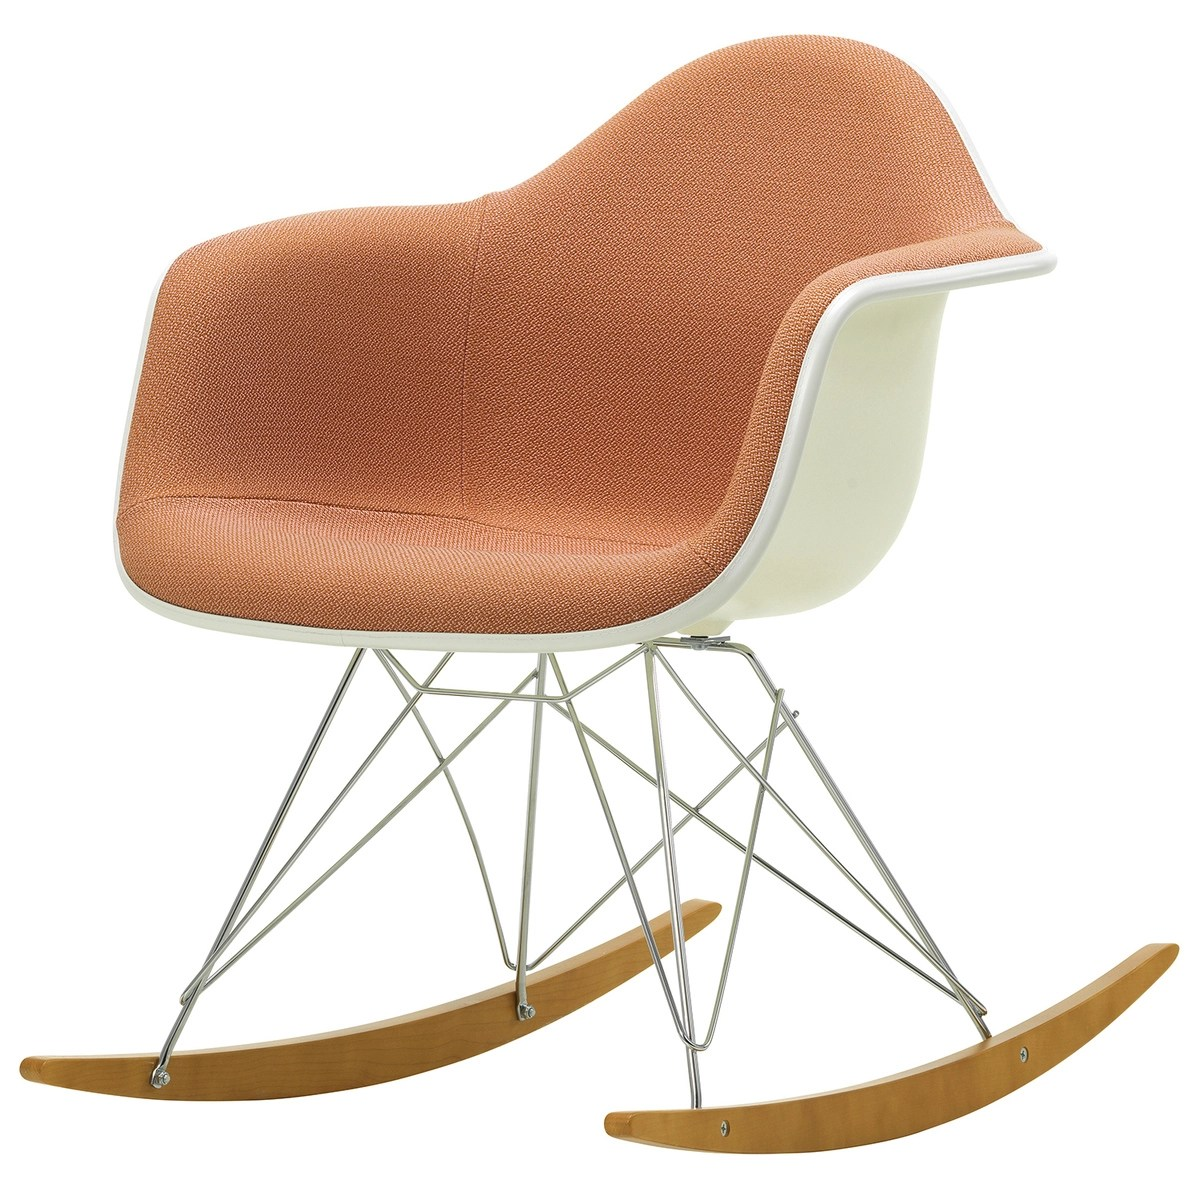 Eames Rar Eames Rar Rocking Chair Upholstered Pale Rose Cognac